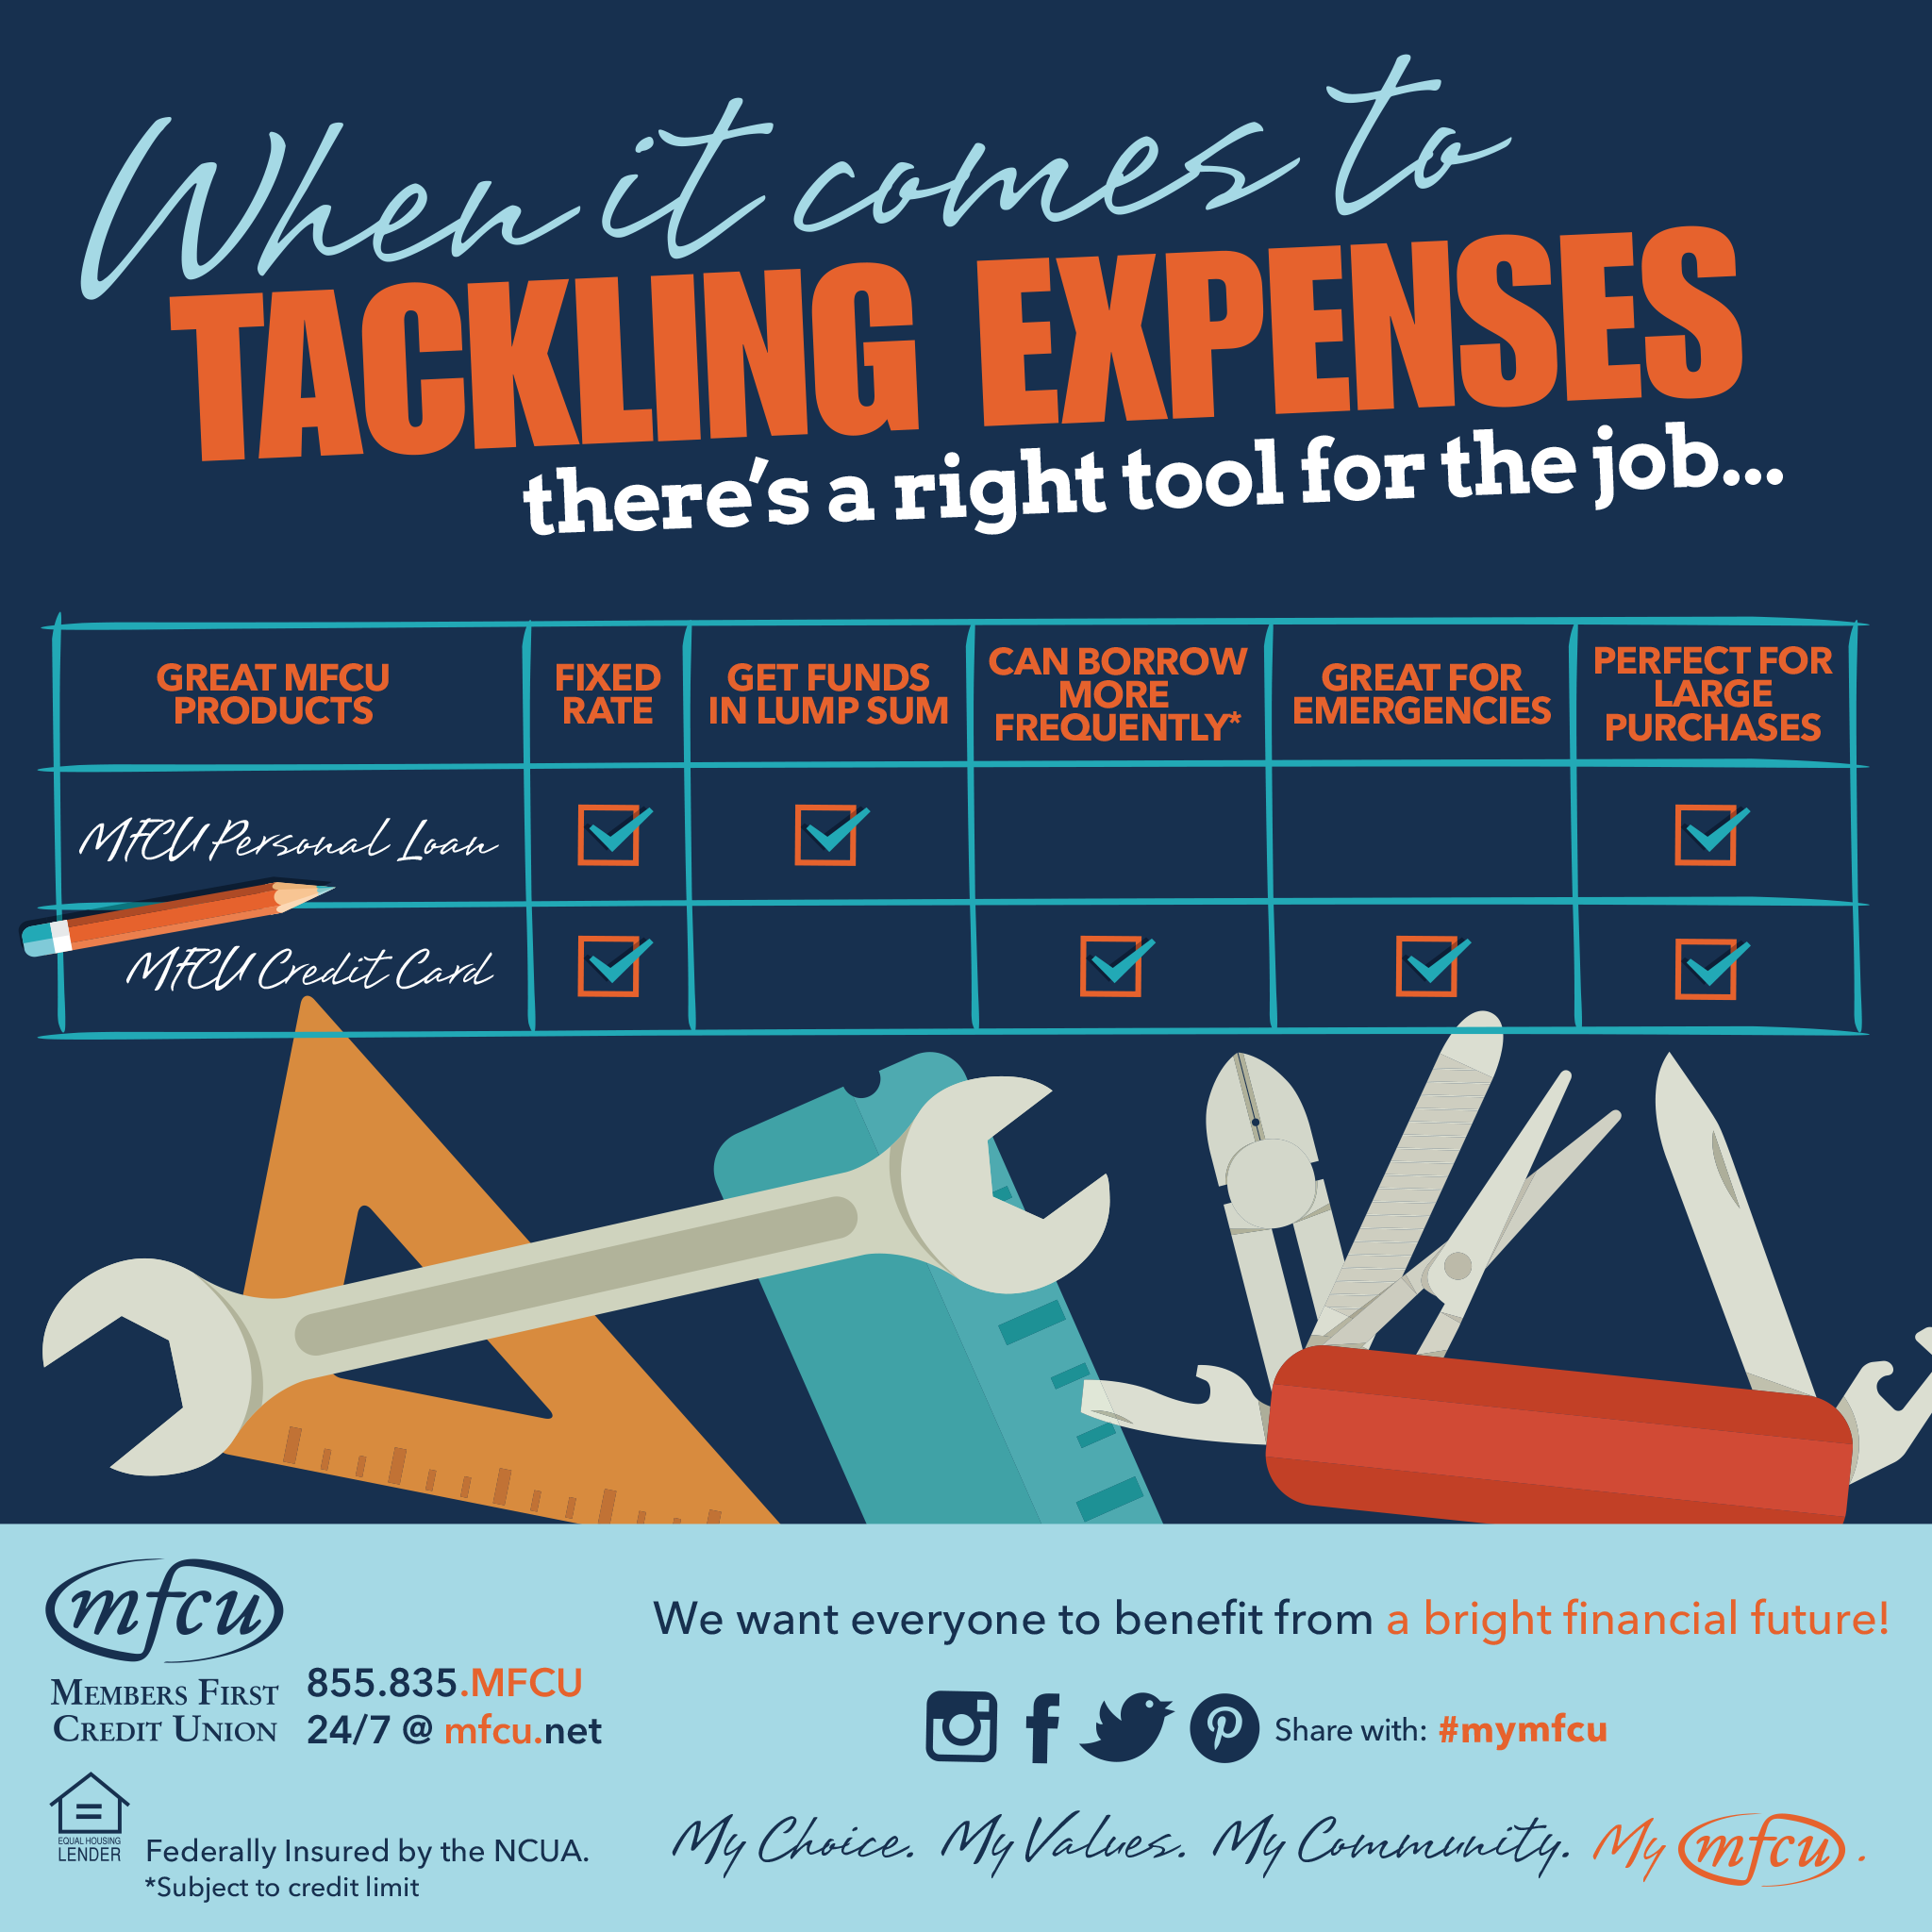 Tackle Expenses